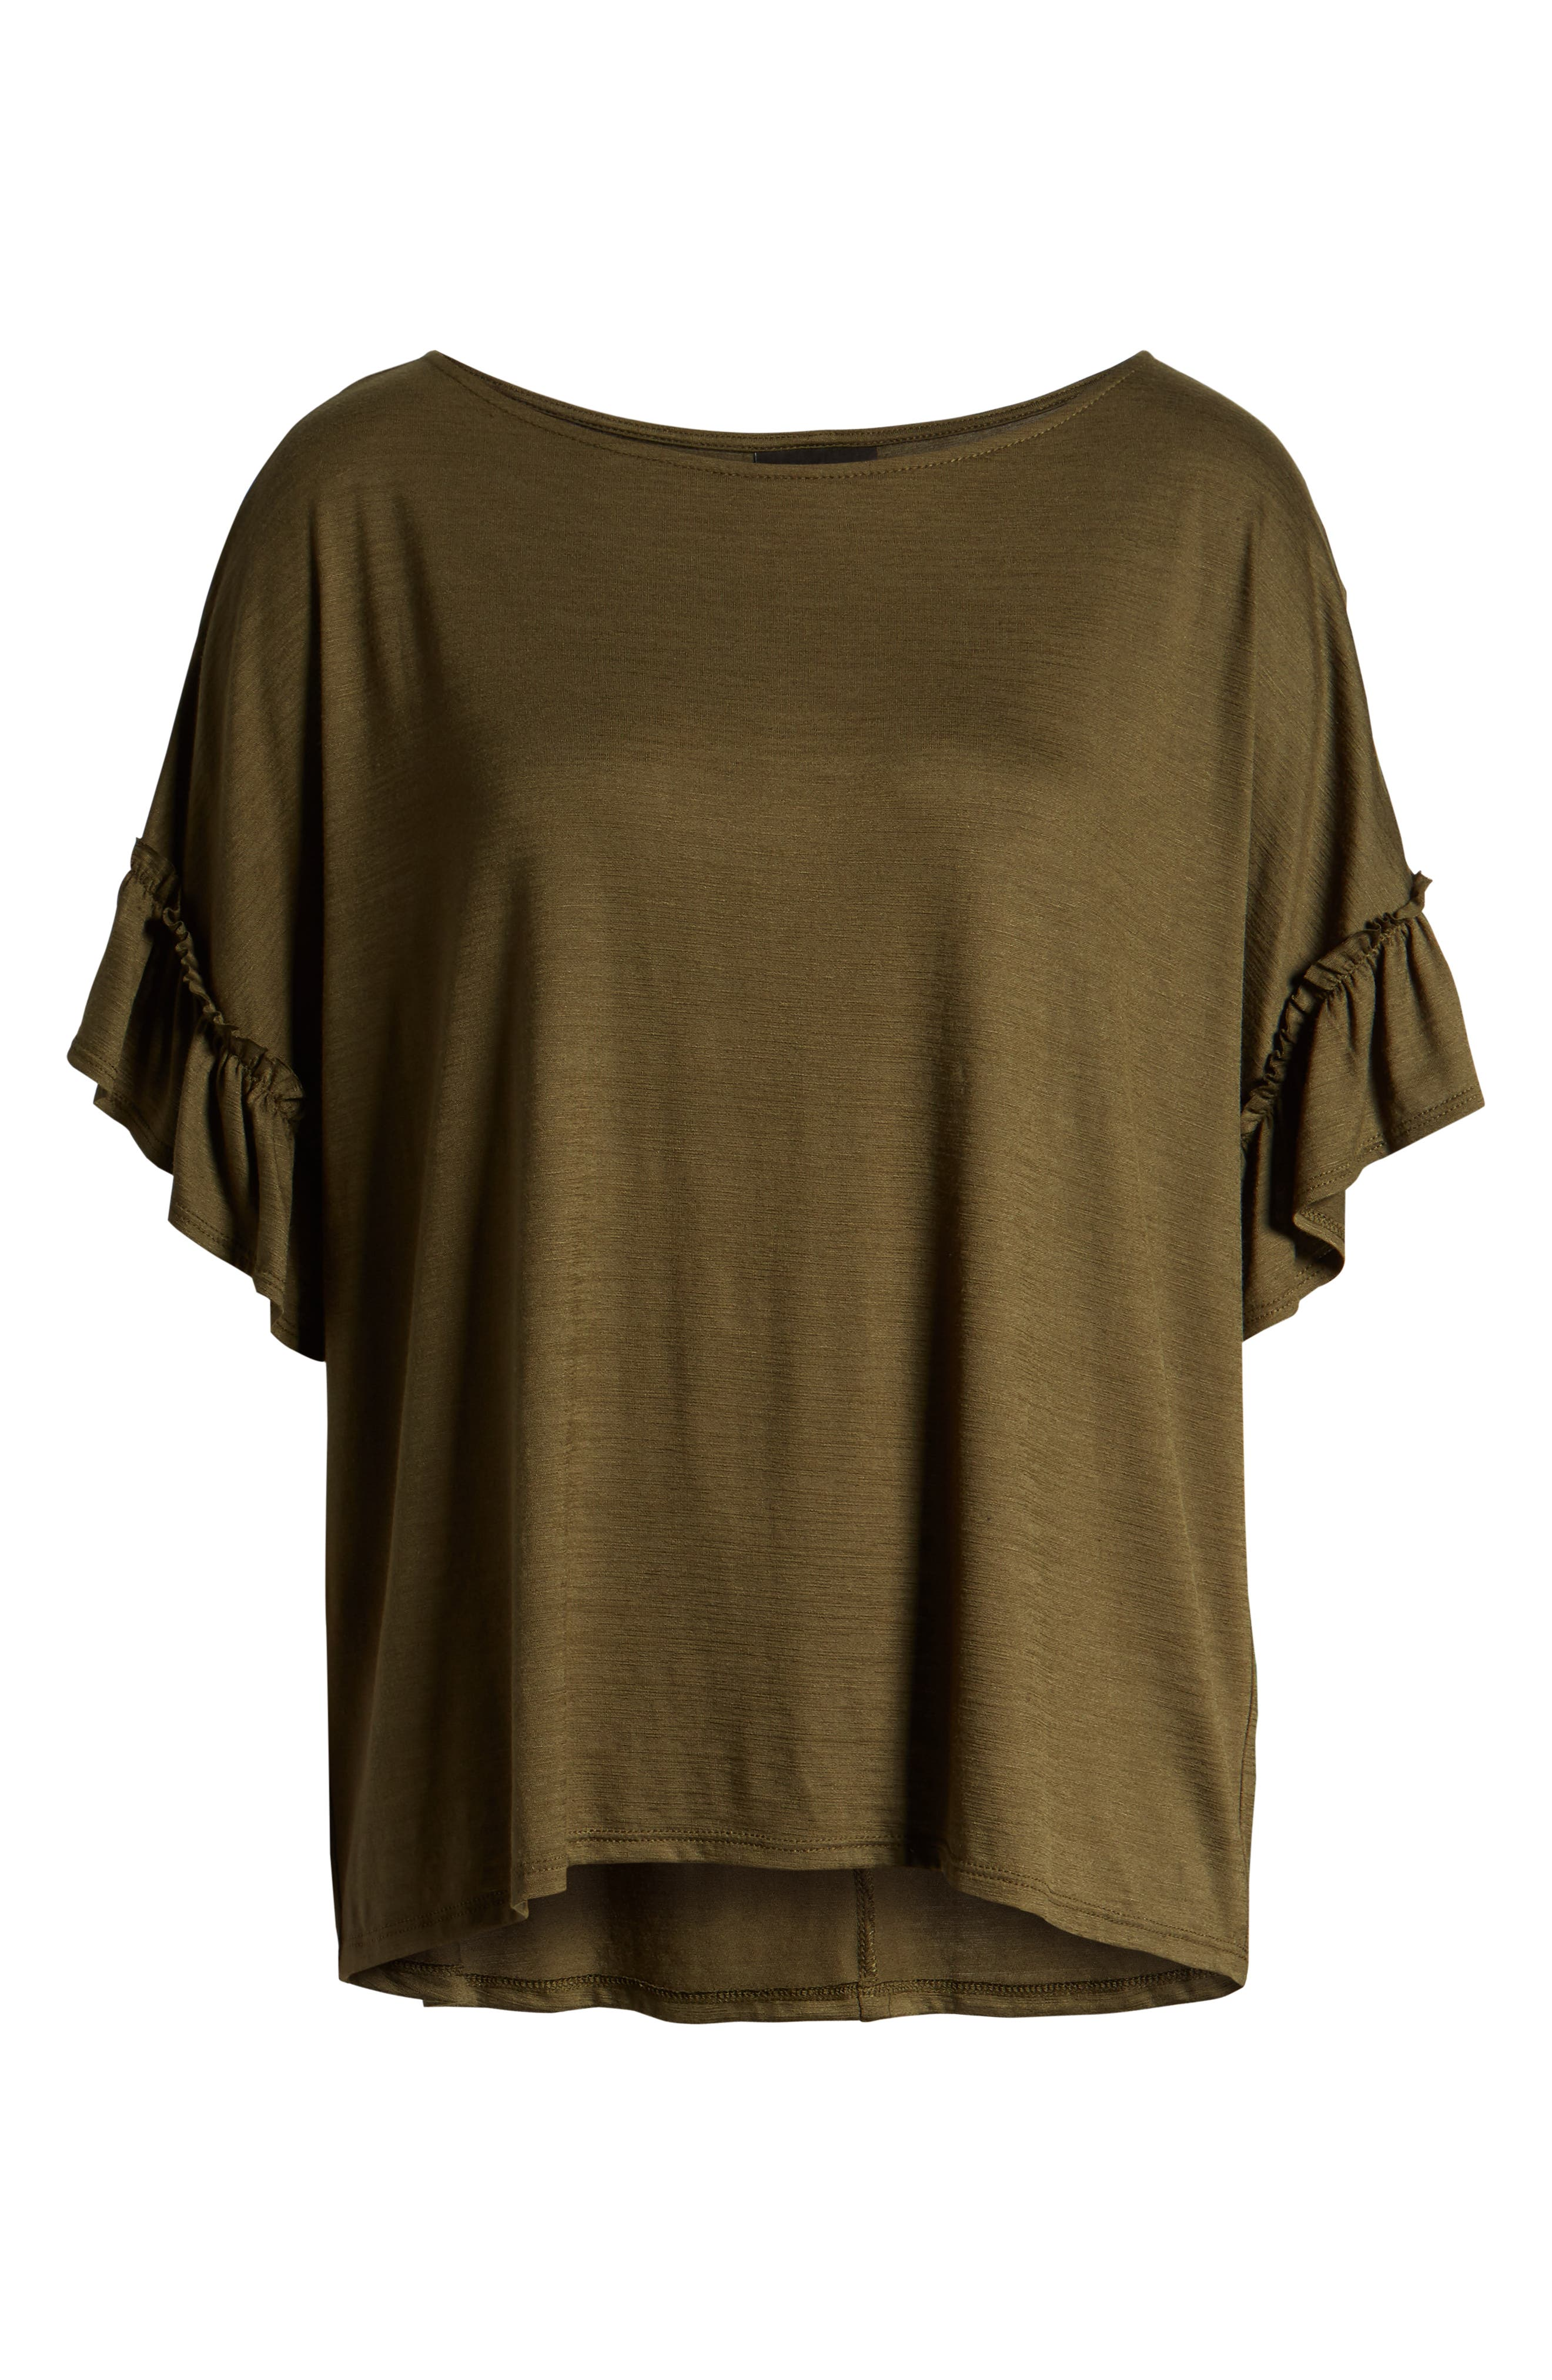 Ruffle Sleeve Top,                             Alternate thumbnail 6, color,                             OLIVE